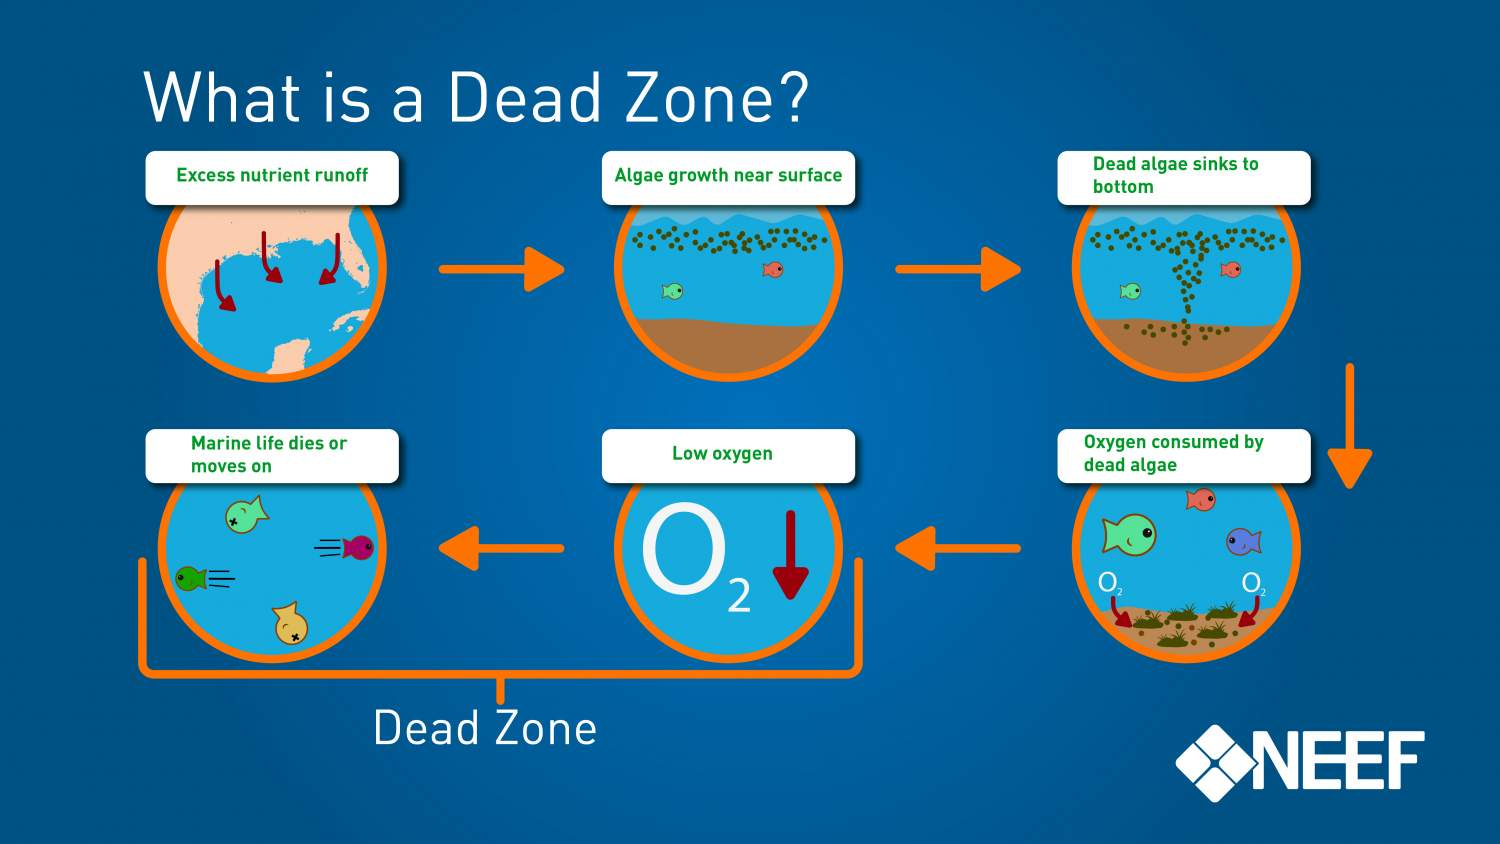 What is a Dead Zone?